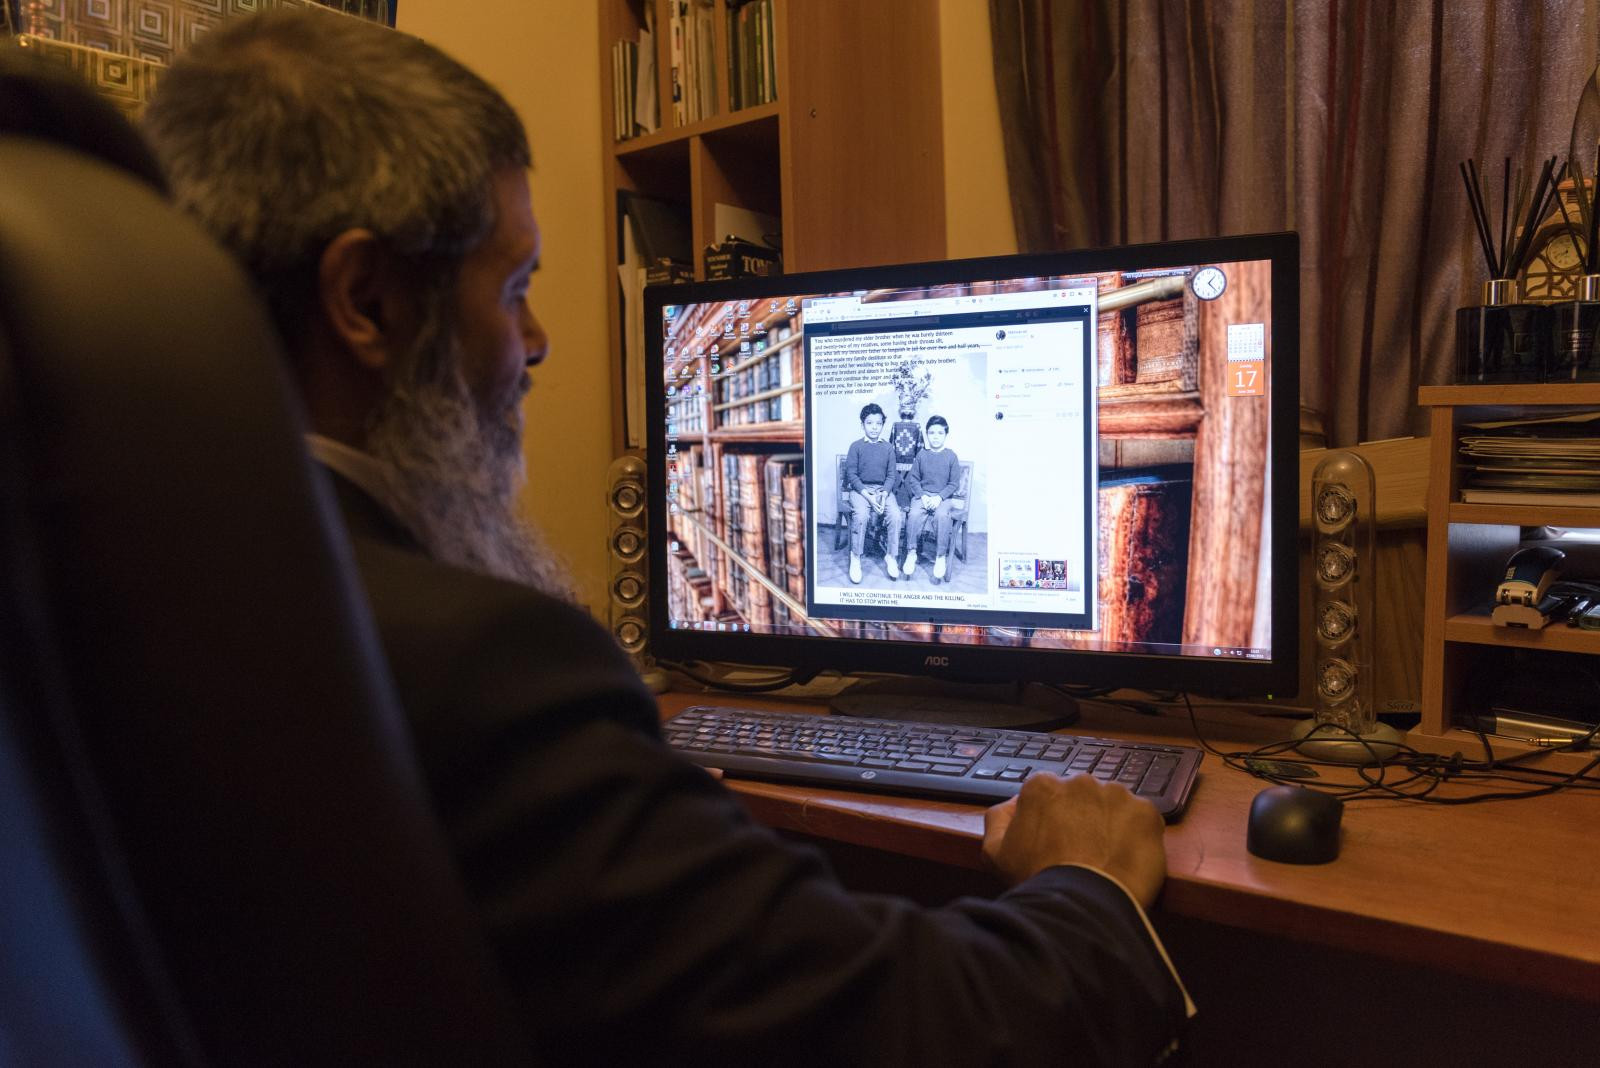 Manwar Ali in his studio looks at a picture of him and his elder brother who was killed when he was barely thirteen together with Twenty-two of his relatives died during the Bangladesh's War of Independence.